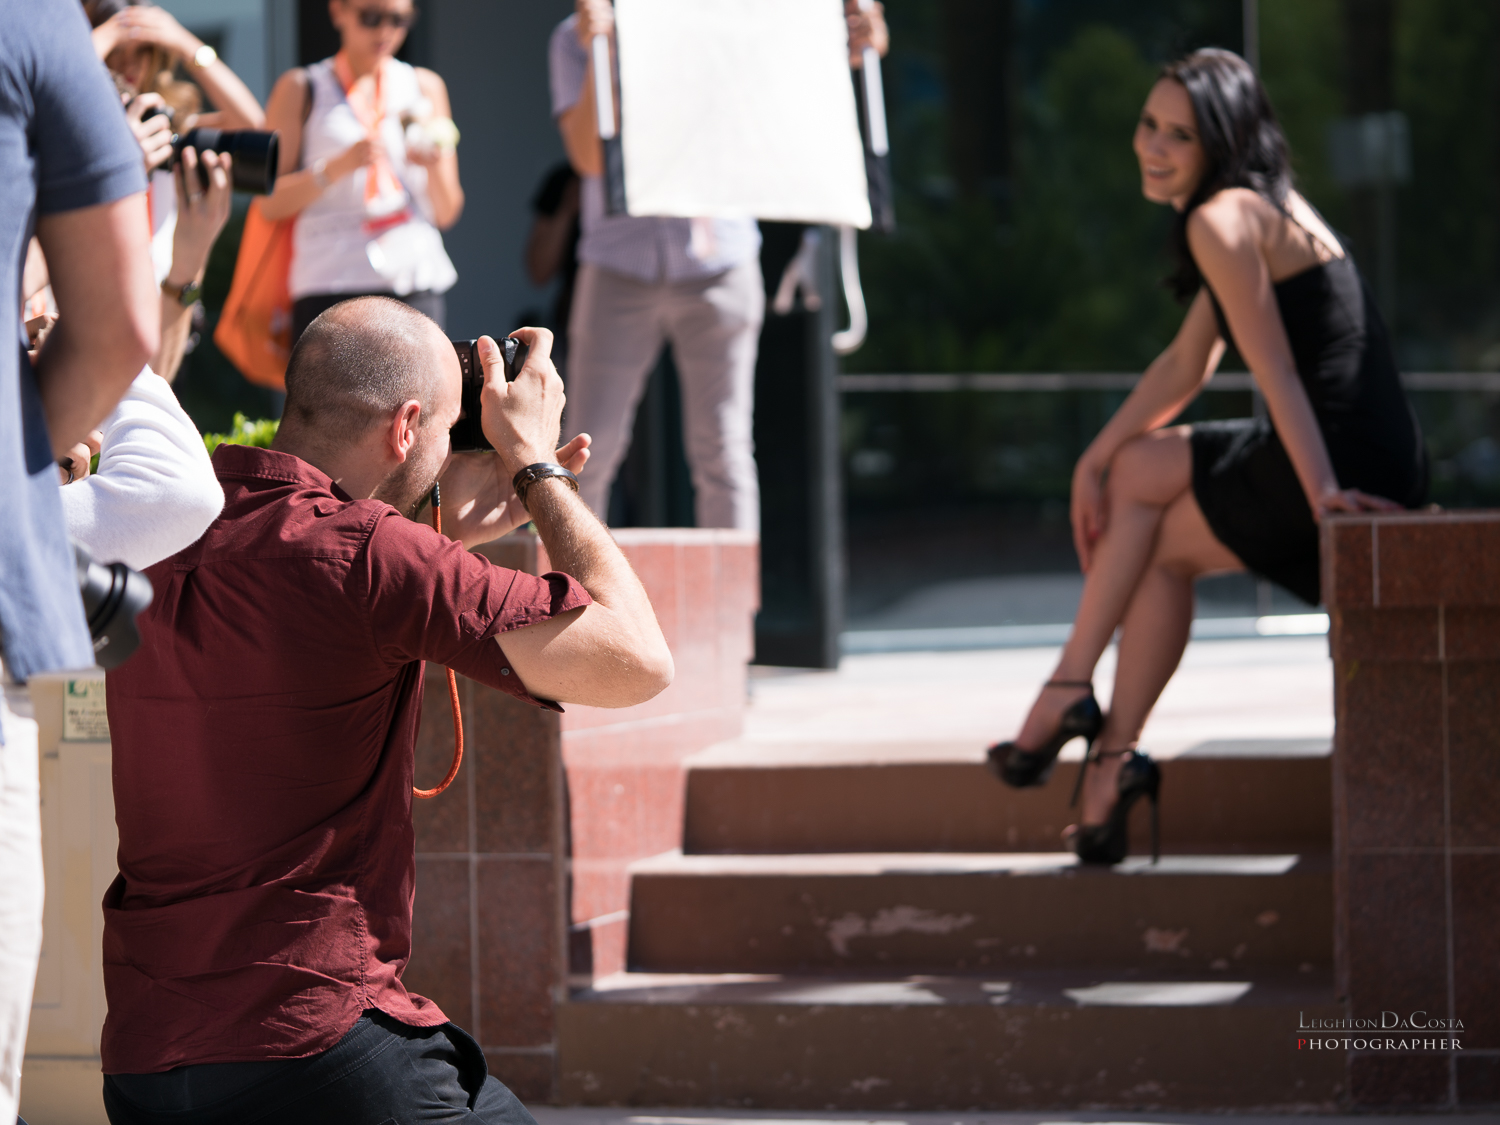 International Wedding Photographer Mike Colon doing what he does best, creating beautiful images.